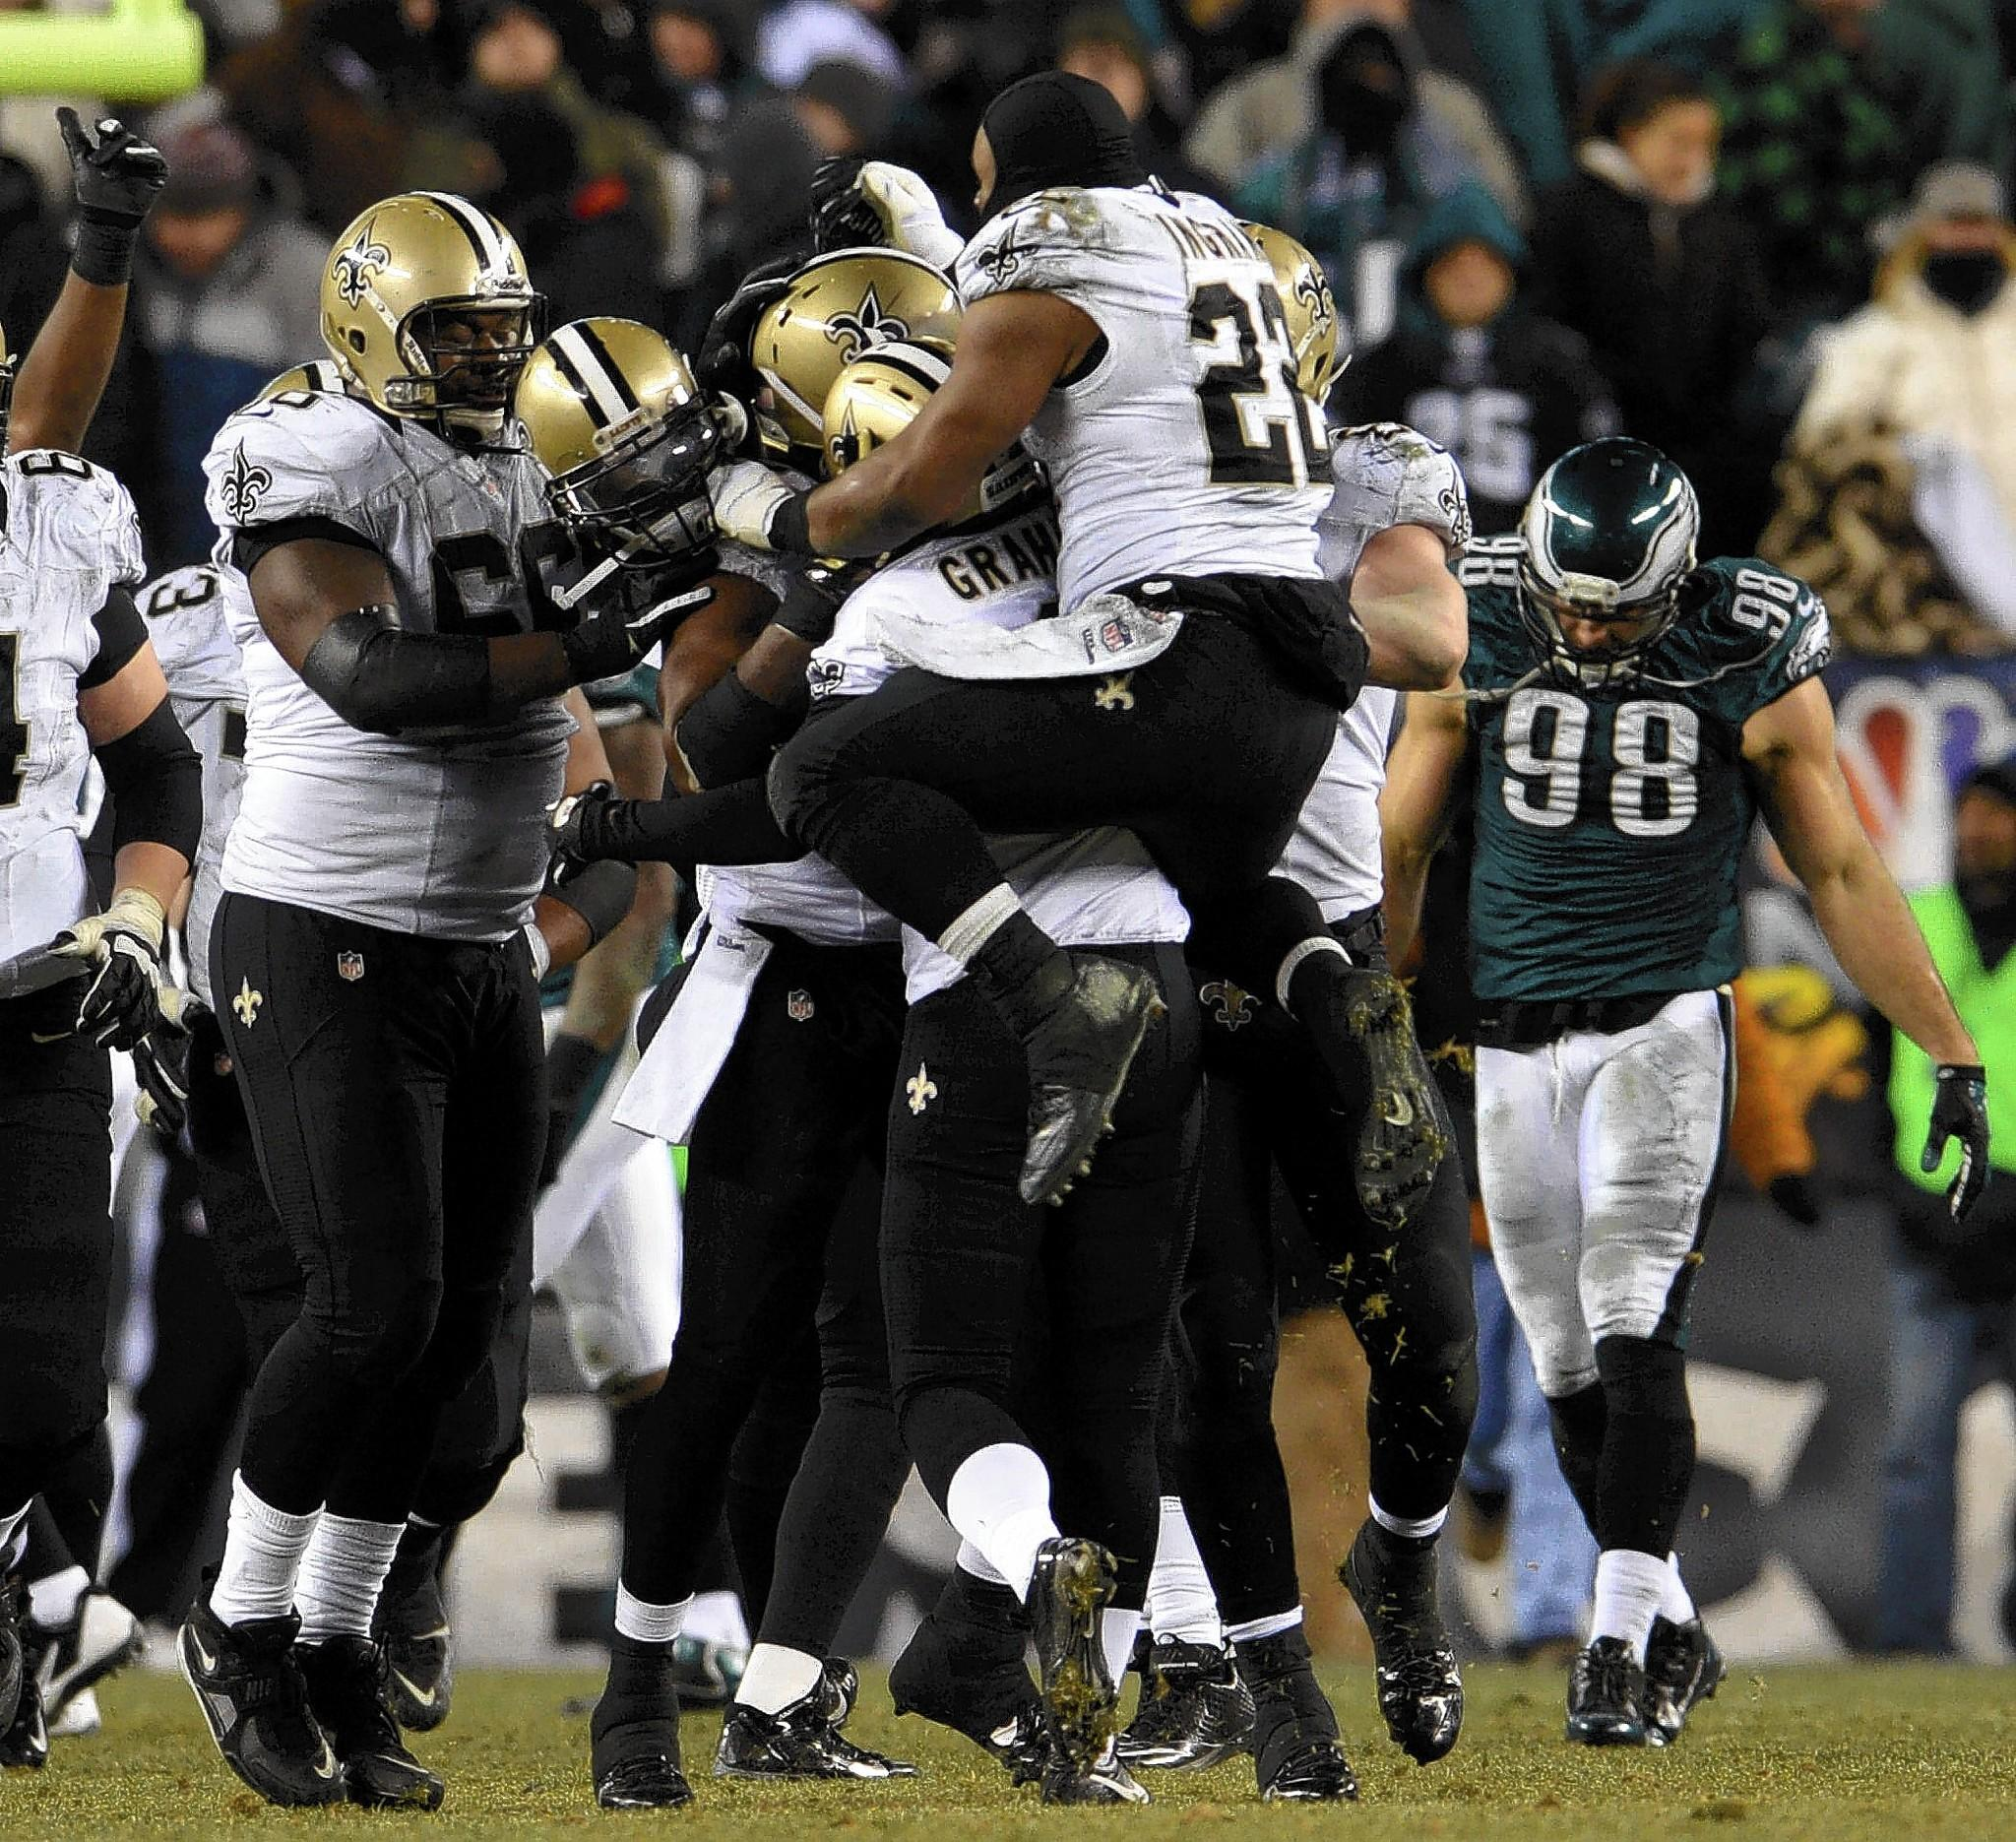 The New Orleans Saints celebrate after kicker Shayne Graham's game-winning field goal against the Philadelphia Eagles at Lincoln Financial Field in Philadelphia on Saturday.